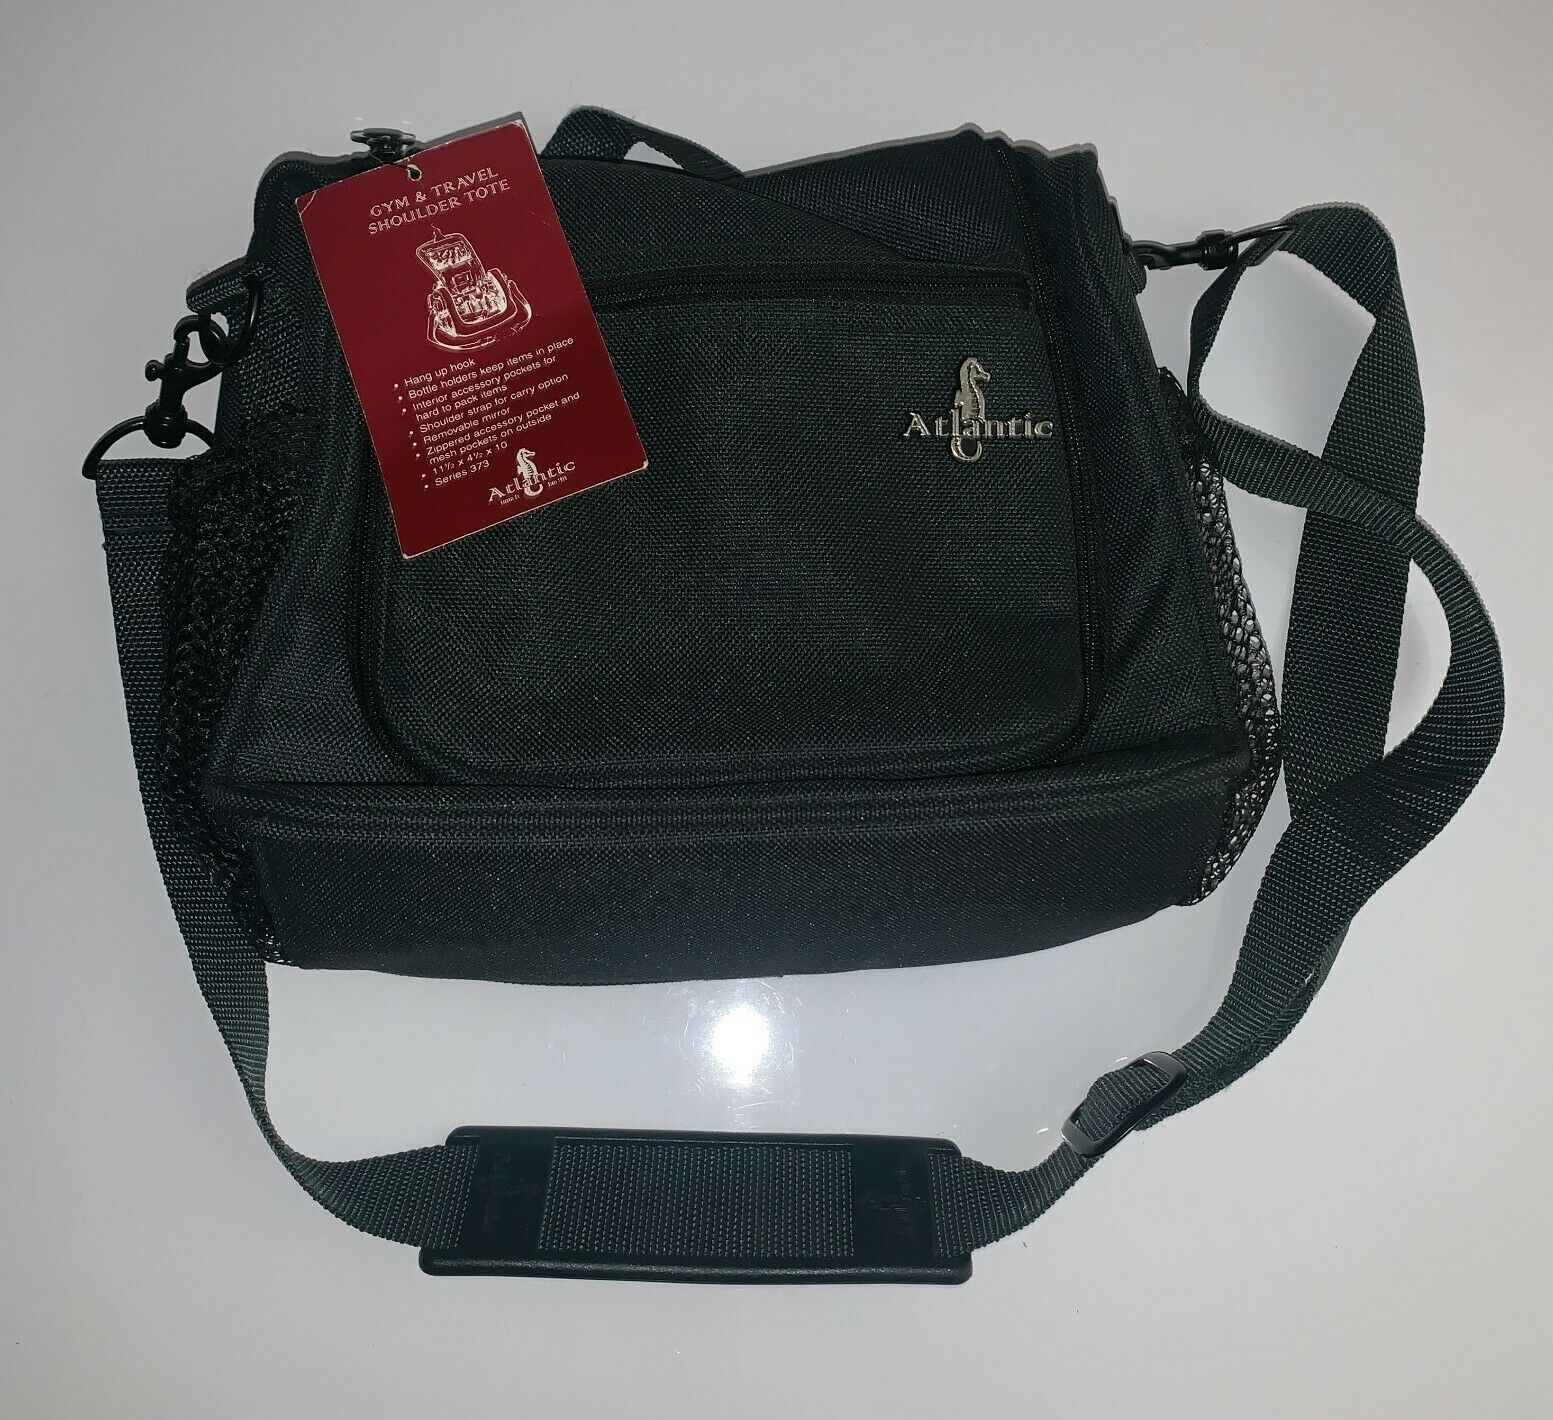 Atlantic GYM and TRAVEL shoulder tote GREEN